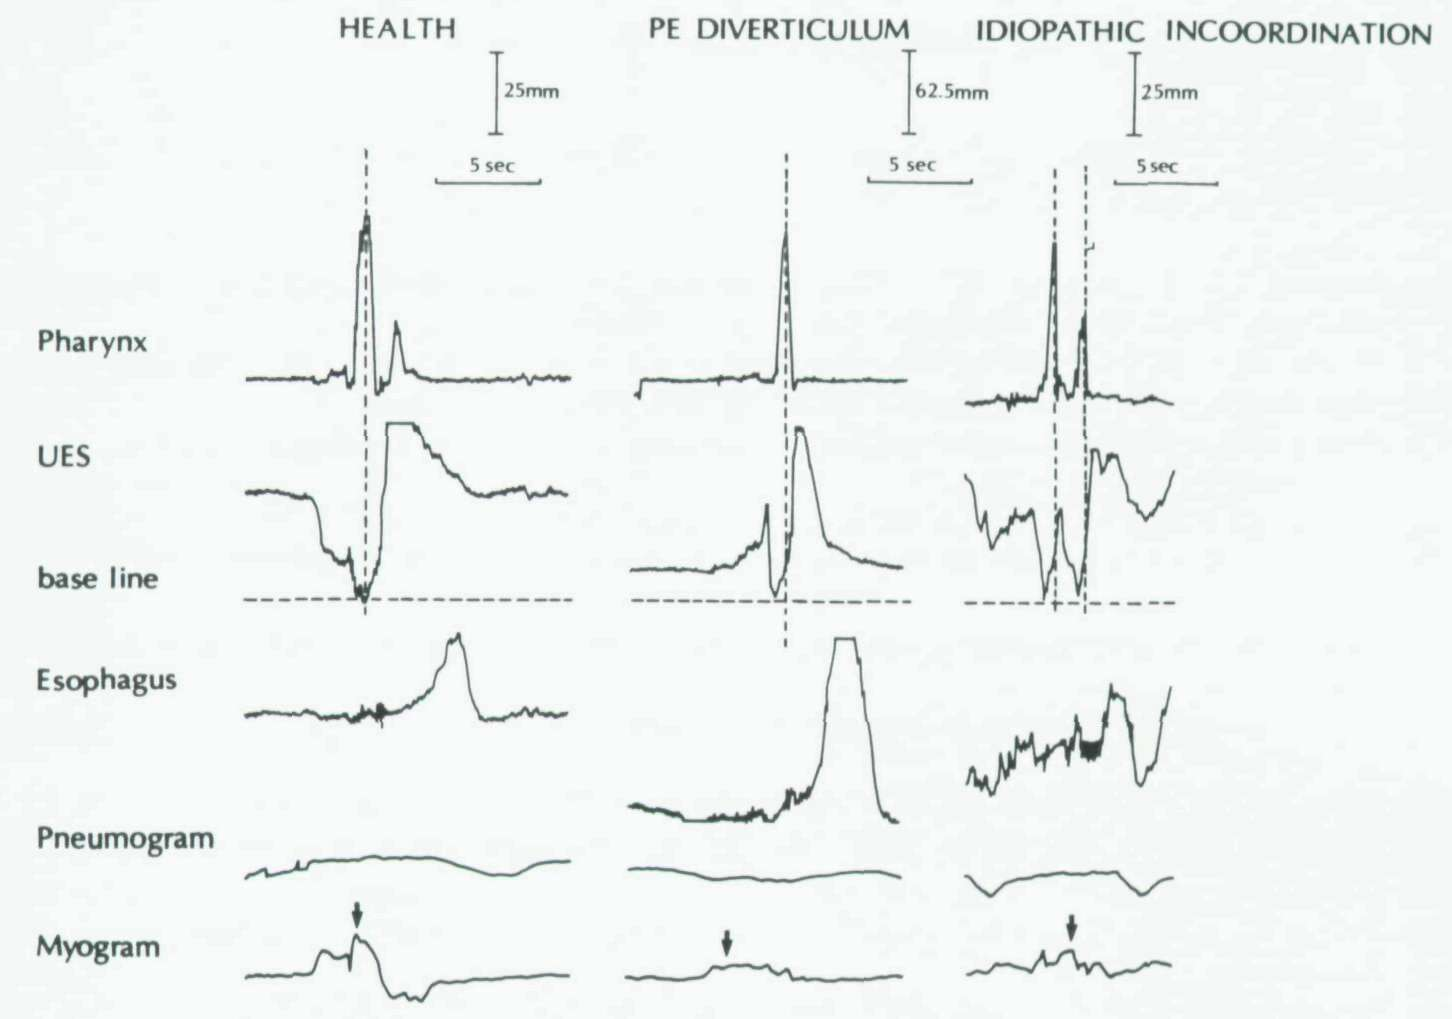 hight resolution of esophageal motility tracings in health left in pharyngoesophageal pe diverticulum middle and in idiopathic incoordination right